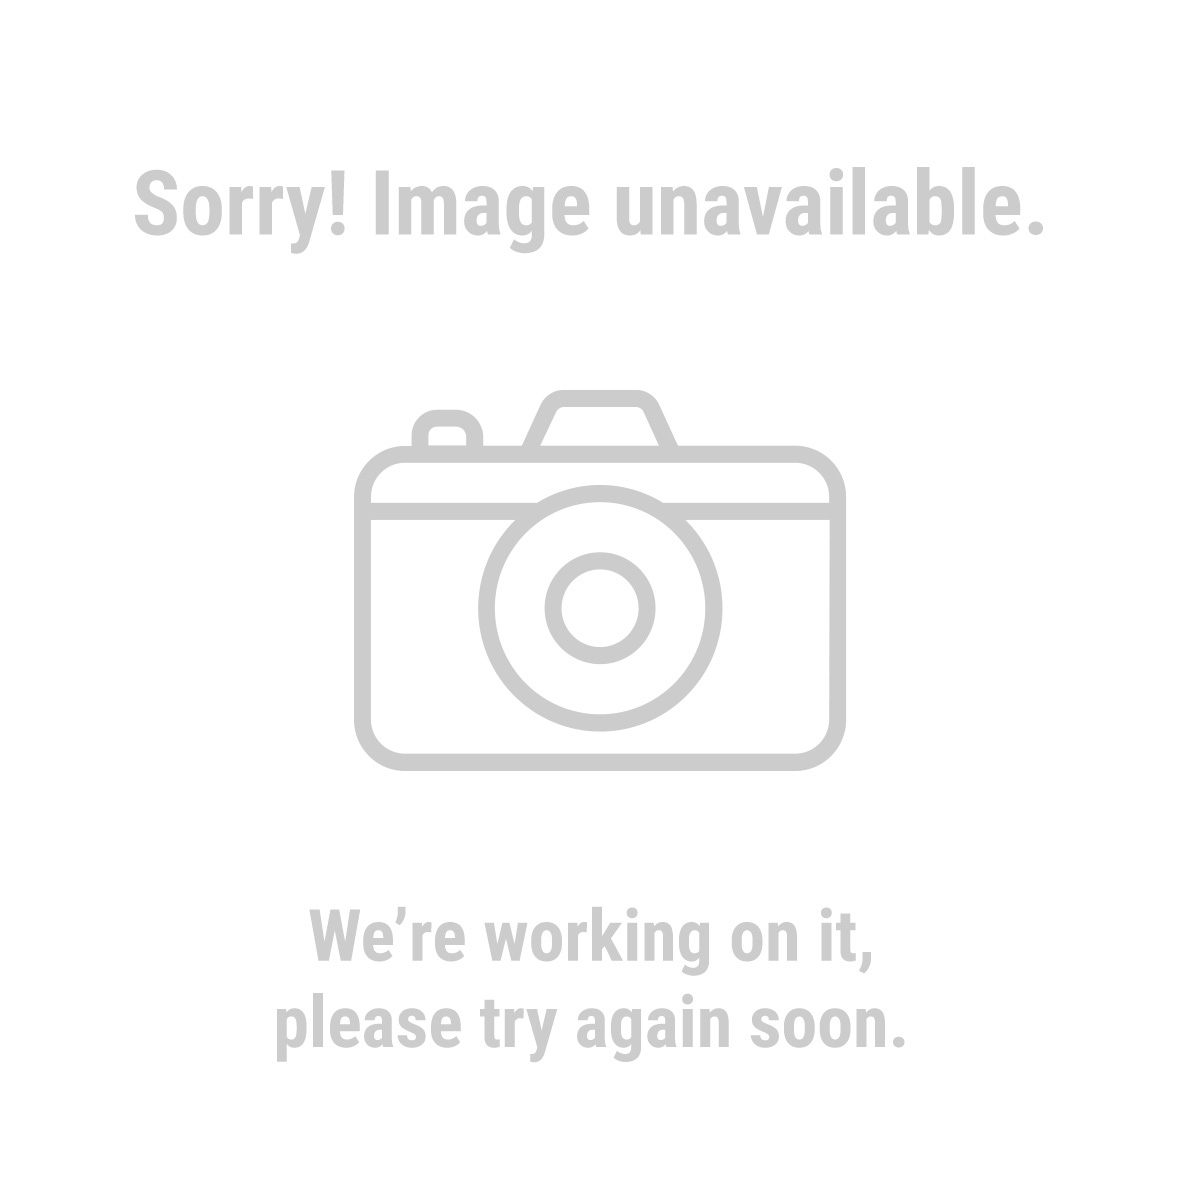 Warrior 61636 9/64 in. Titanium Nitride High Speed Steel Drill Bits,  Piece